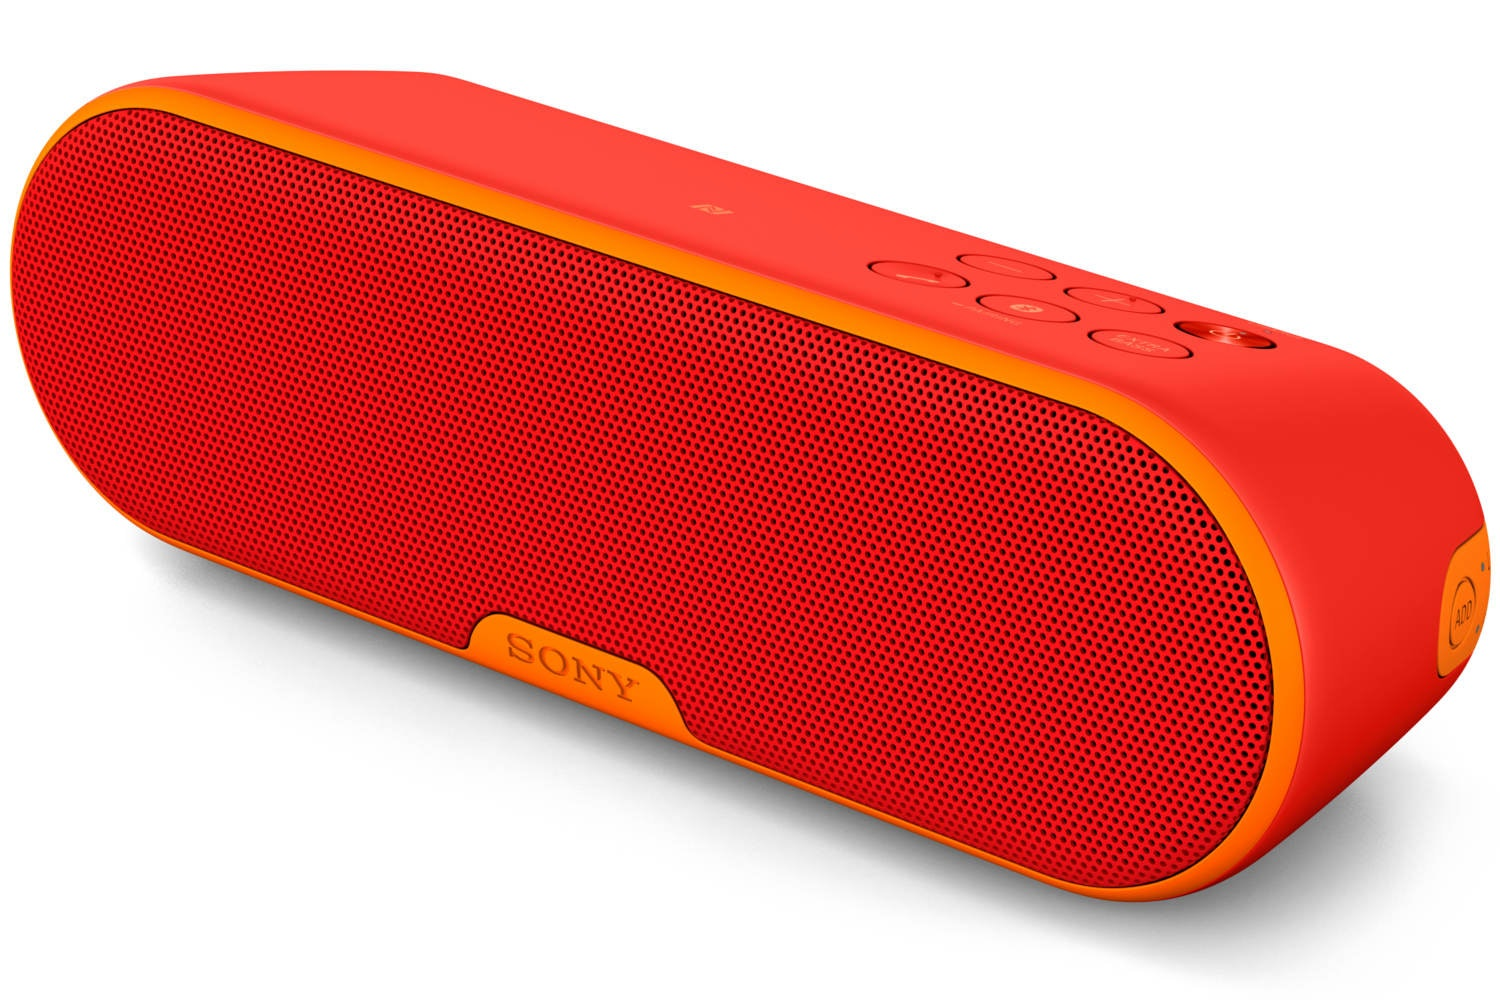 Sony Wireless Speaker | SRSXB2R.EU8